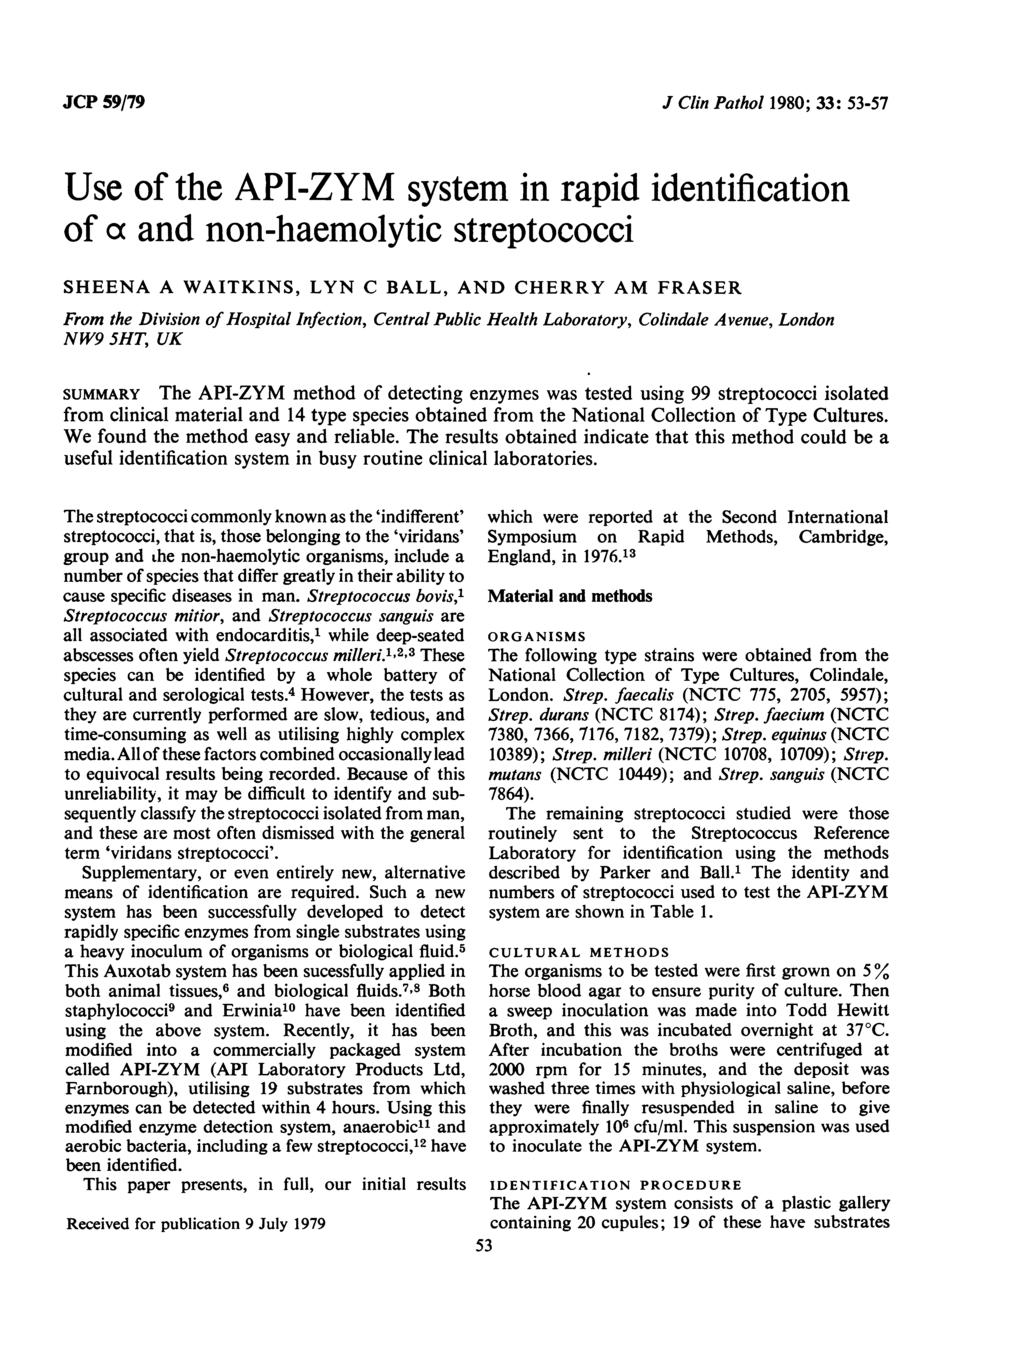 JCP 59/79 J Clin Pathol 1980; 33: 53-57 Use of the API-ZYM system in rapid identification of a and non-haemolytic streptococci SHEENA A WAITKINS, LYN C BALL, AND CHERRY AM FRASER From the Division of